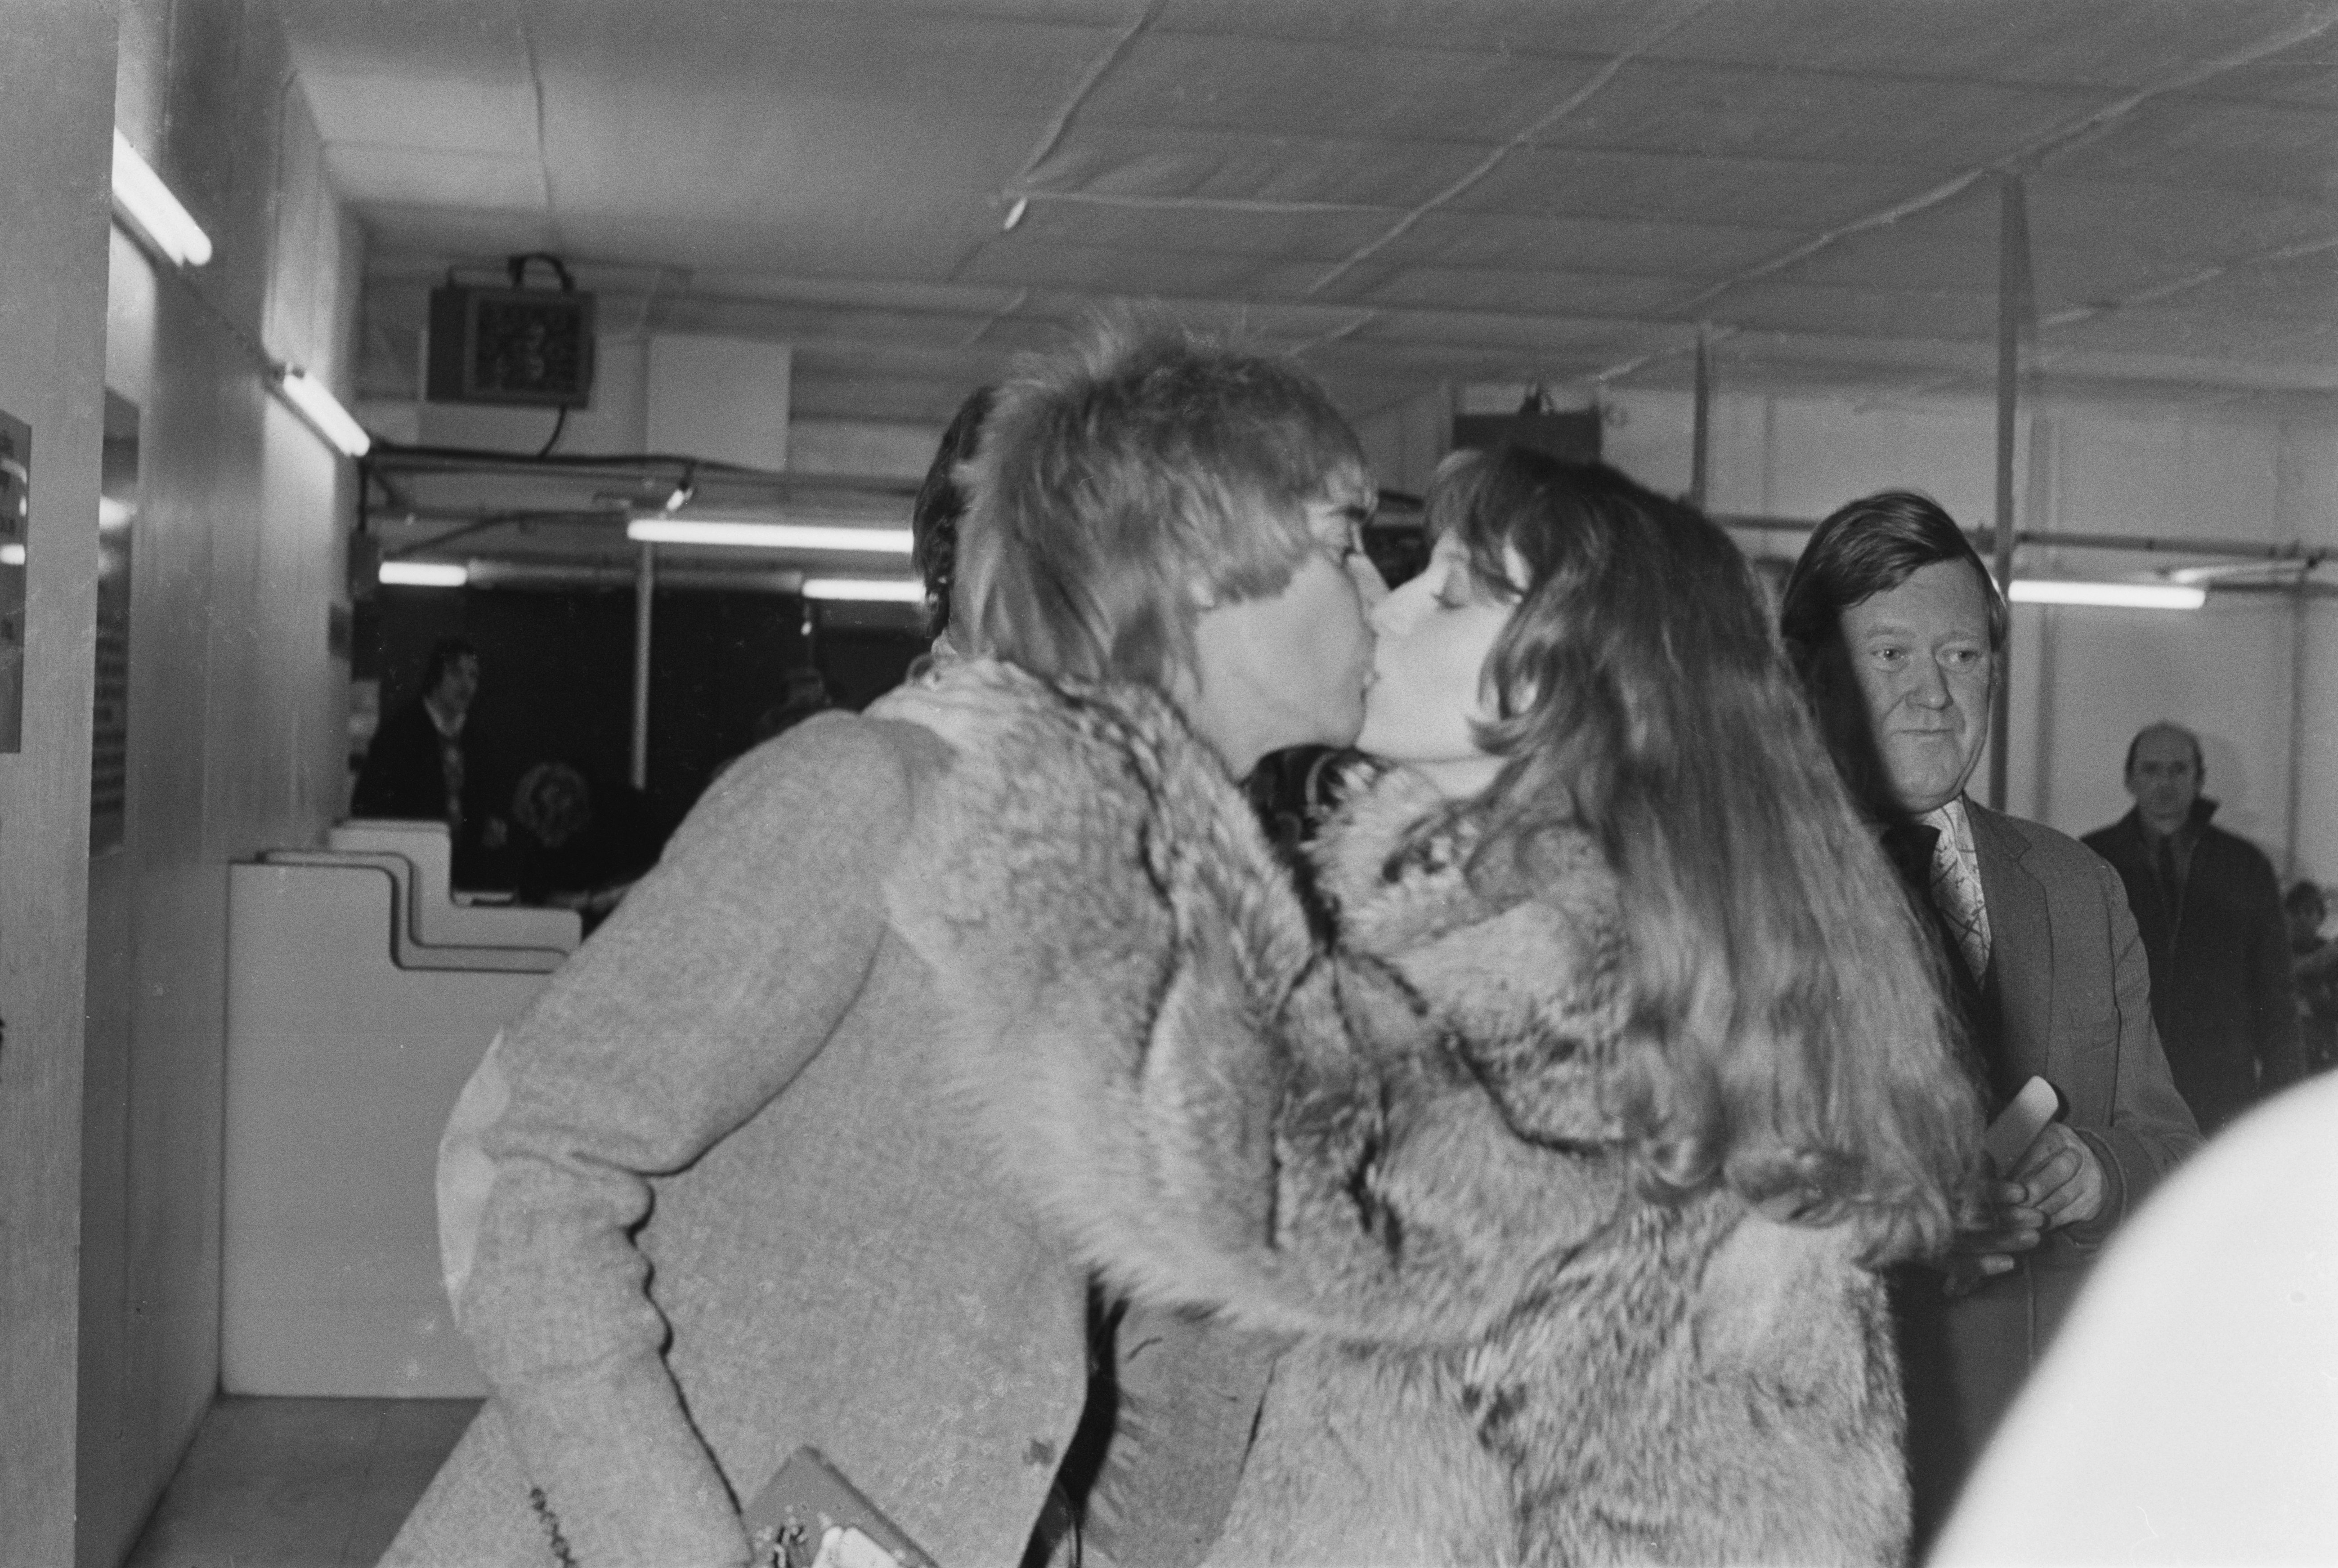 British singer and songwriter Rod Stewart kisses his girlfriend, American singer and fashion model Bebe Buell, UK, 11th January 1978. (Photo by Evening Standard/Hulton Archive/Getty Images)